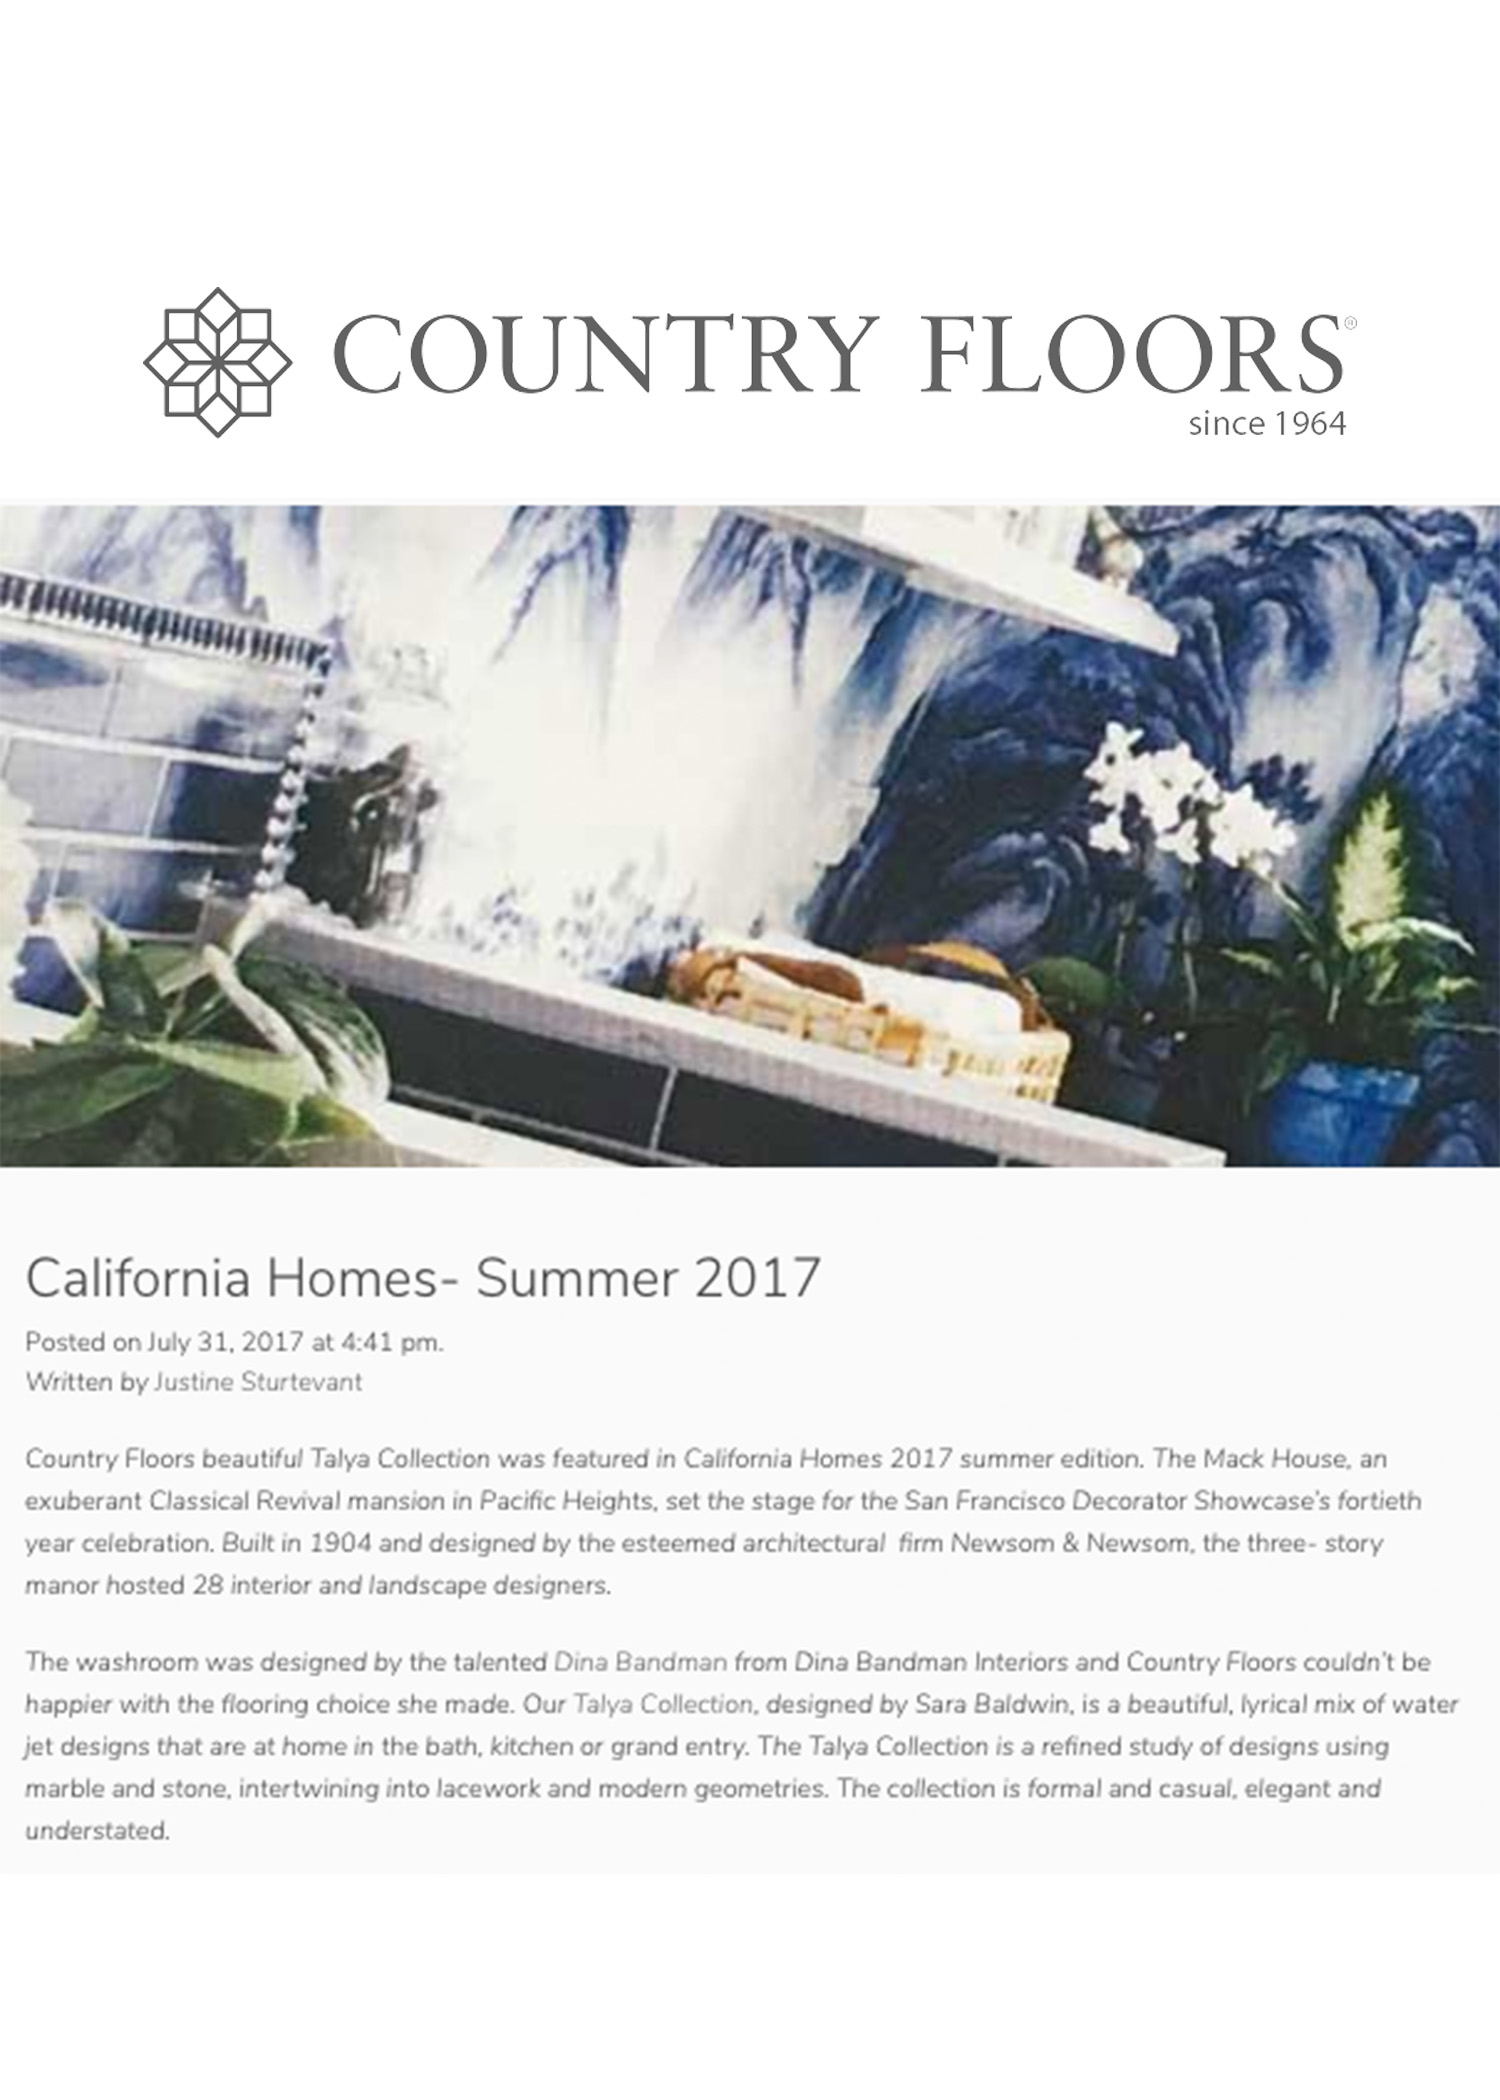 COUNTRY FLOORS